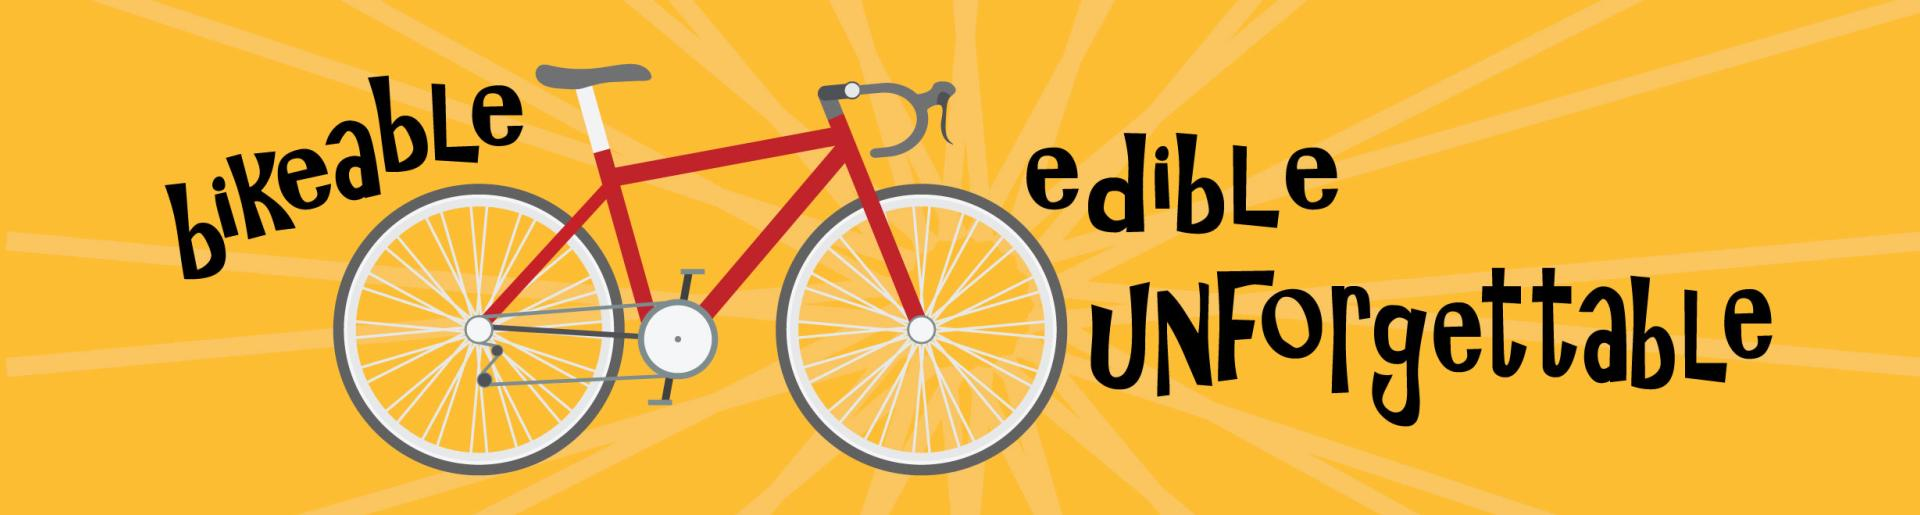 Bikeable, Edible, Unforgettable Madison